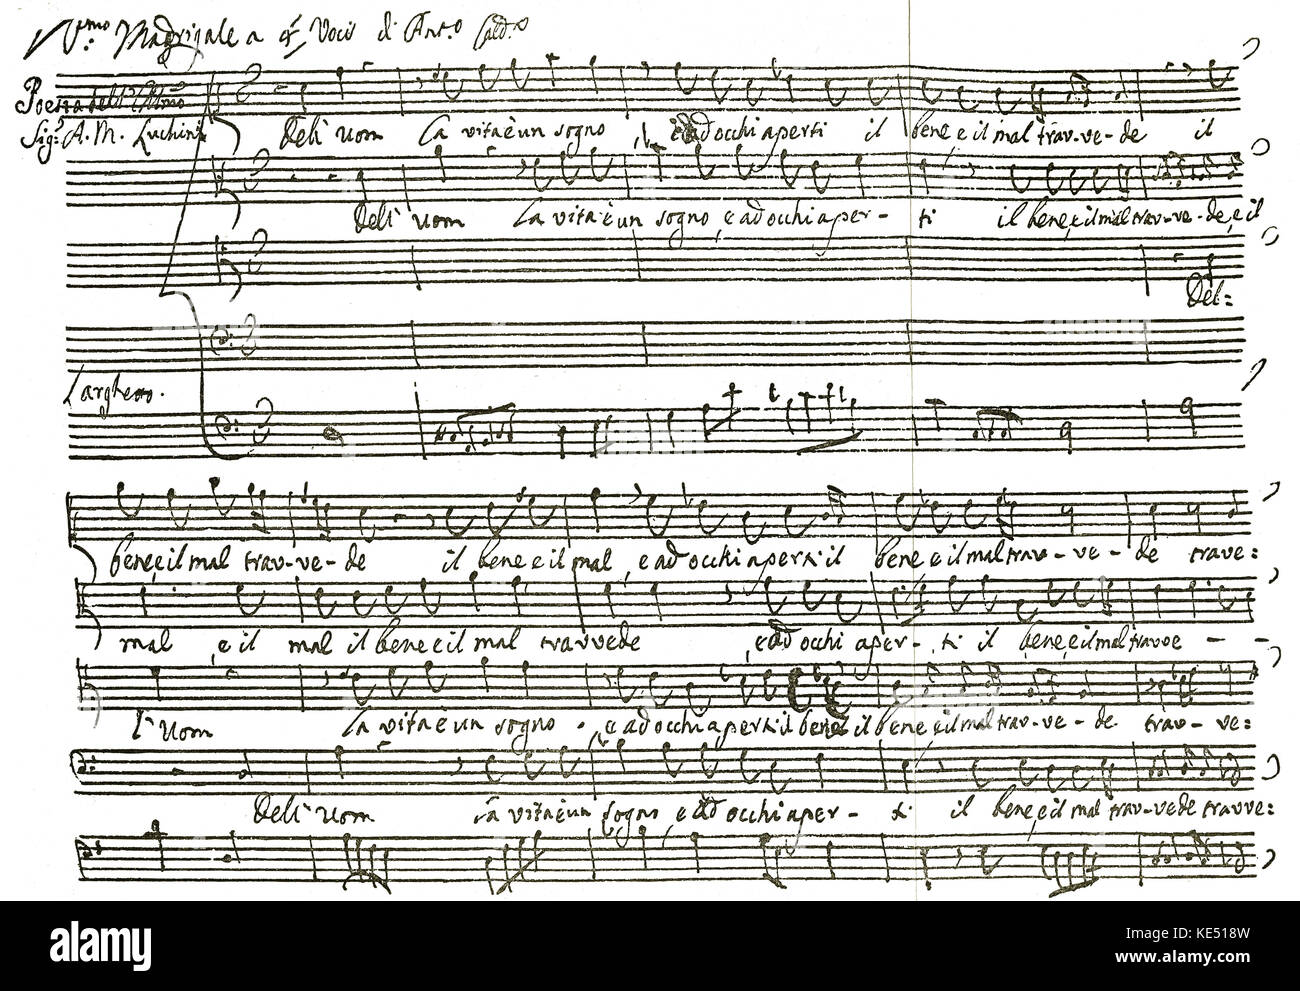 Antonio Caldara - madrigal (a setting for two or more voices - secular ) by the Italian baroque composer. AC: 1670 - Stock Image